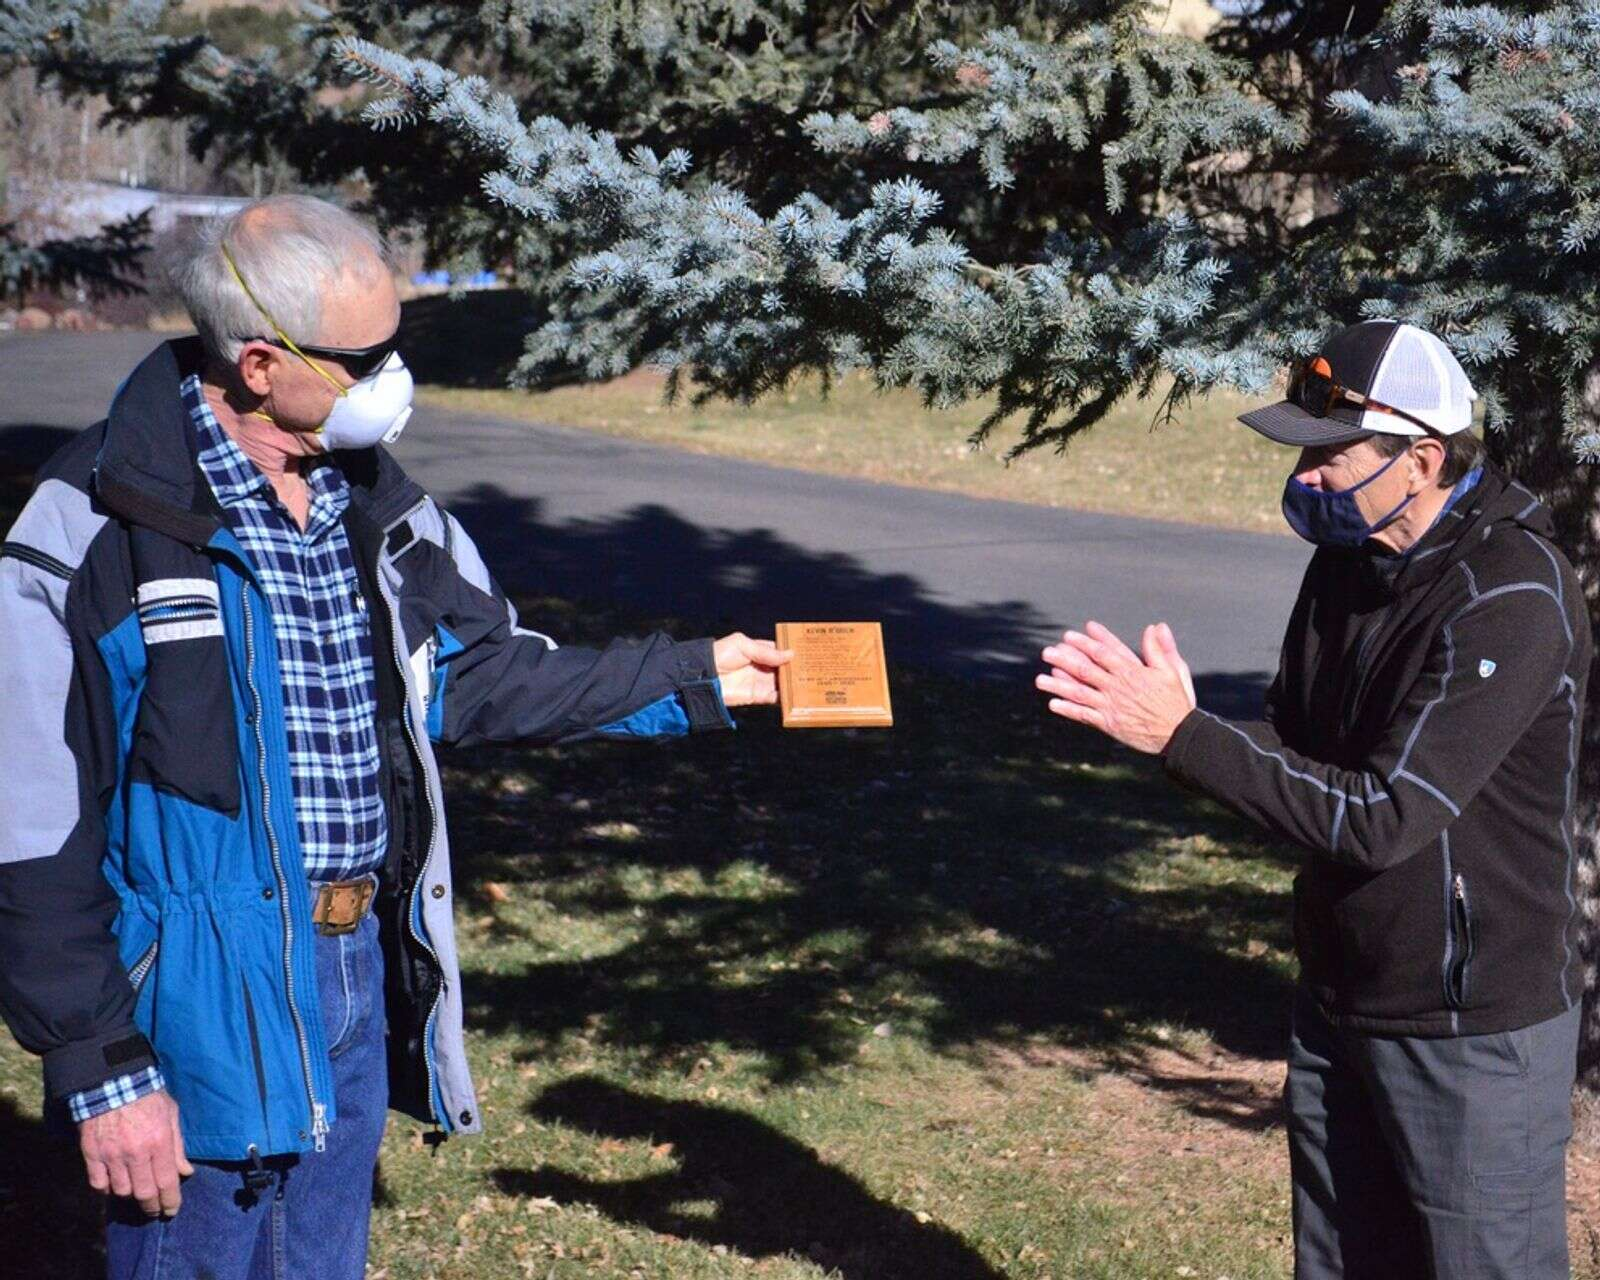 Kevin O'Brien (left) receives recognition for his co-founding role with Roaring Fork Outdoor Volunteers at a ceremony in Basalt on Dec. 5.| Courtesy photo